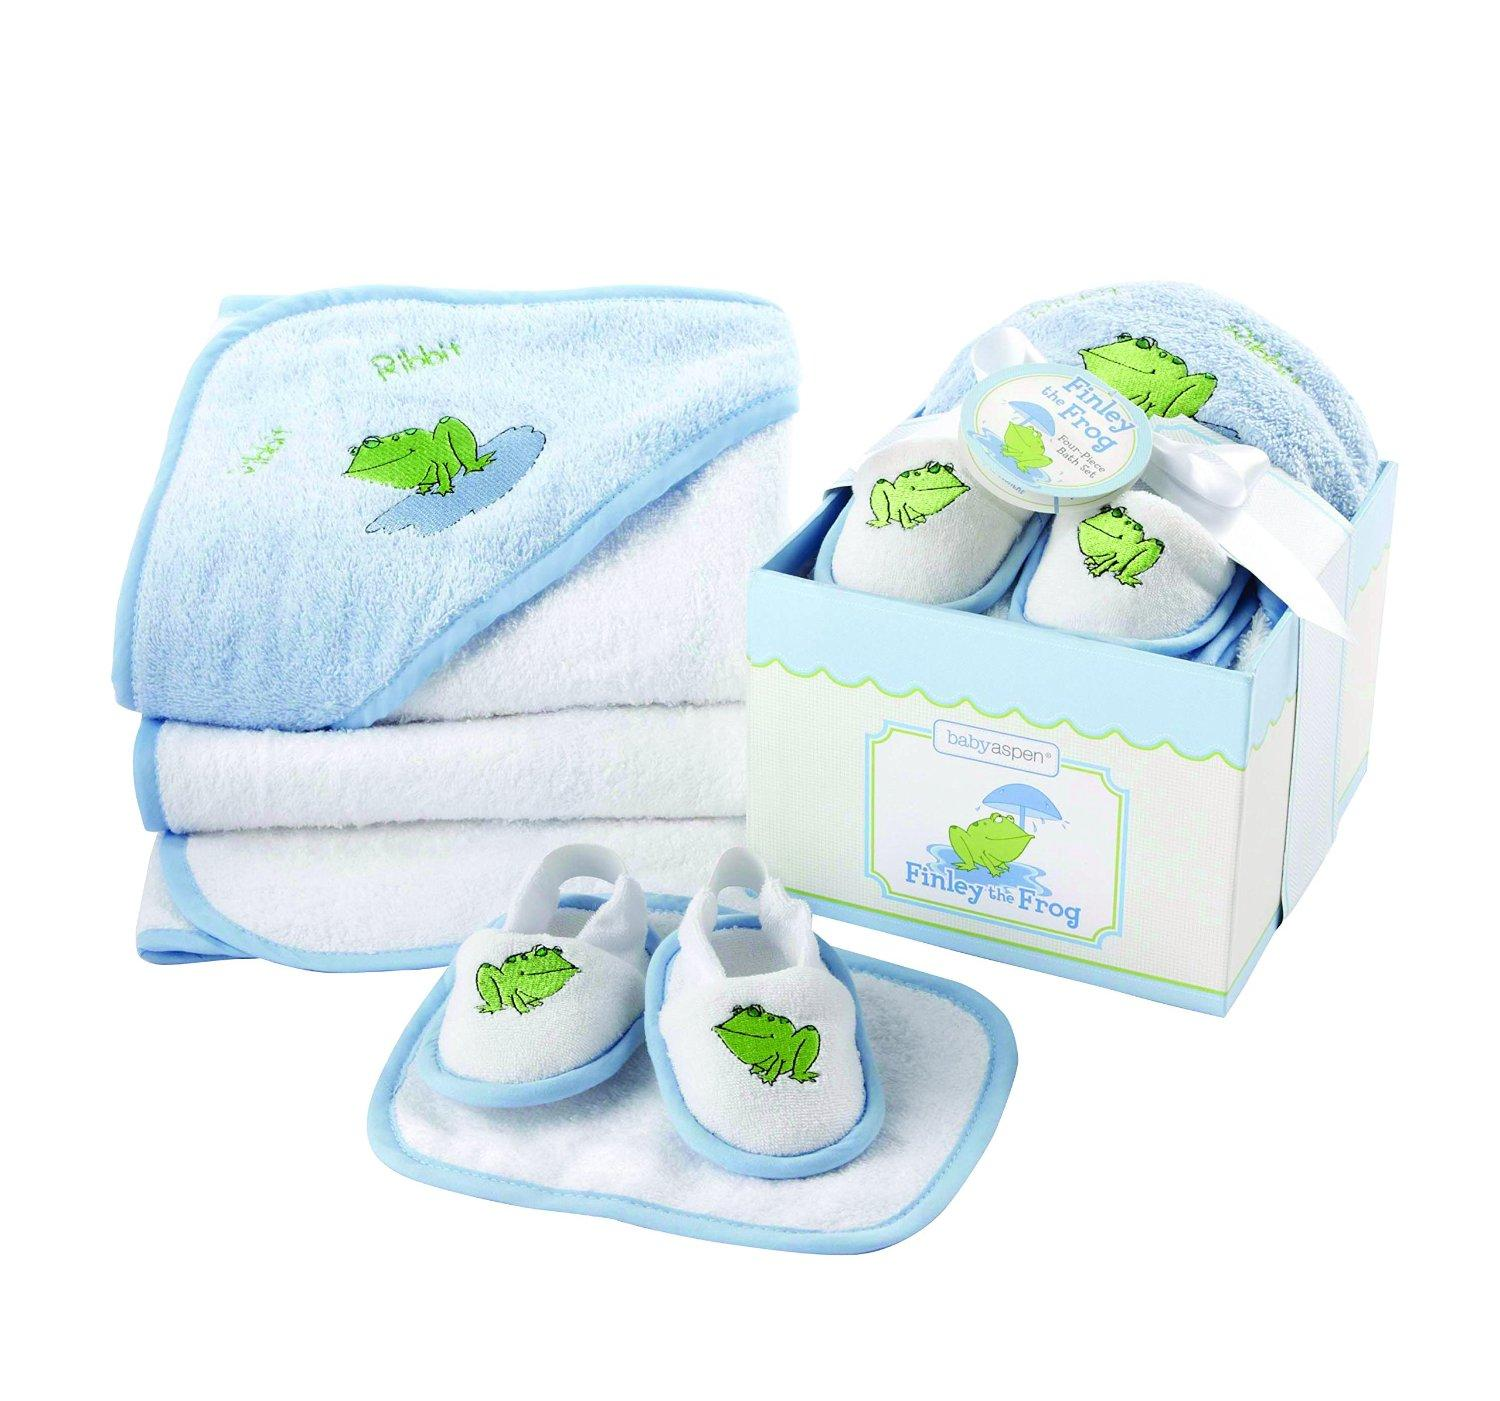 Baby Aspen, Finley the Frog Four-Piece Bathtime Gift Set, Blue